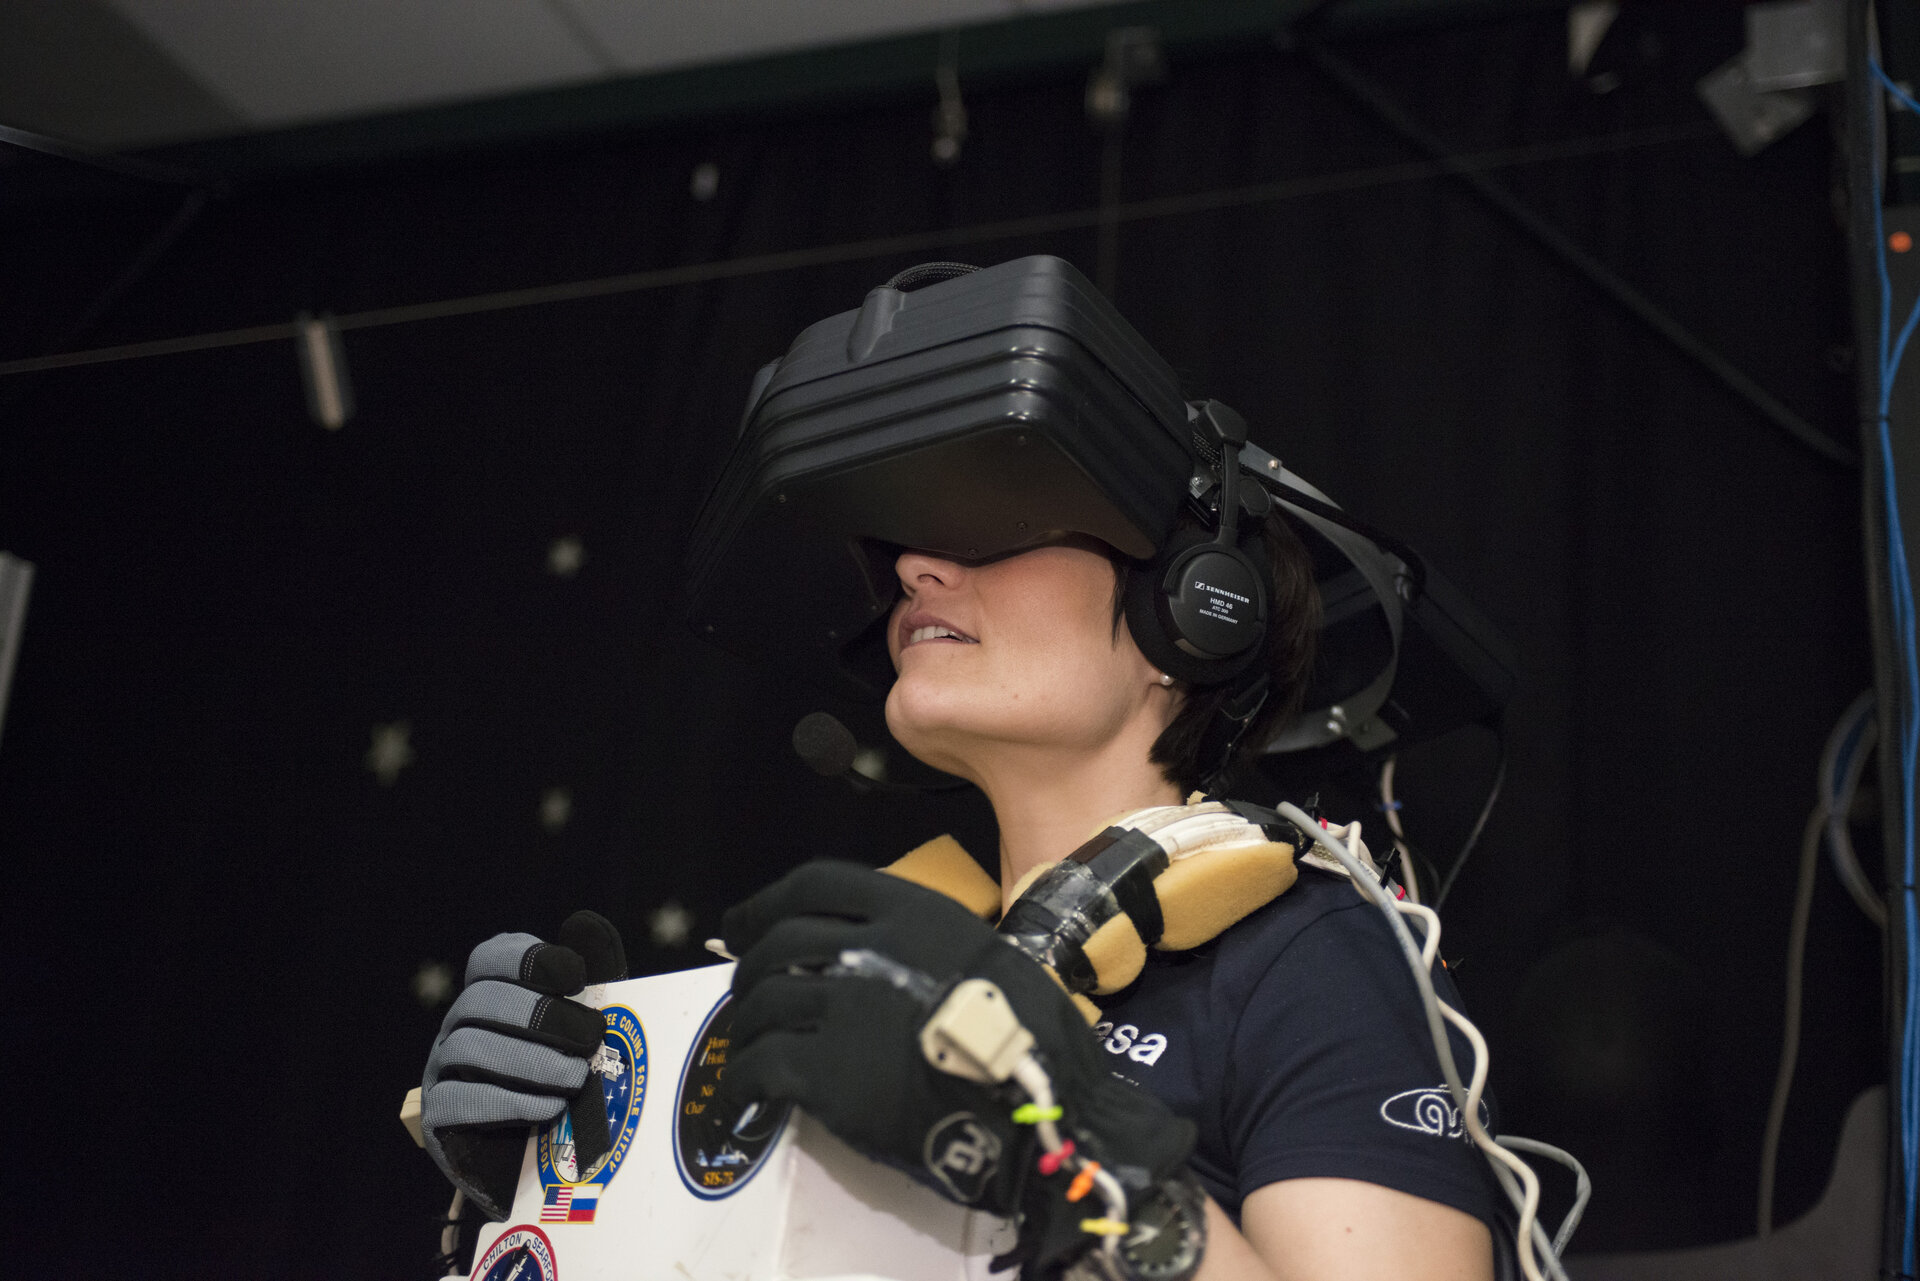 Samantha using the virtual reality hardware at JSC